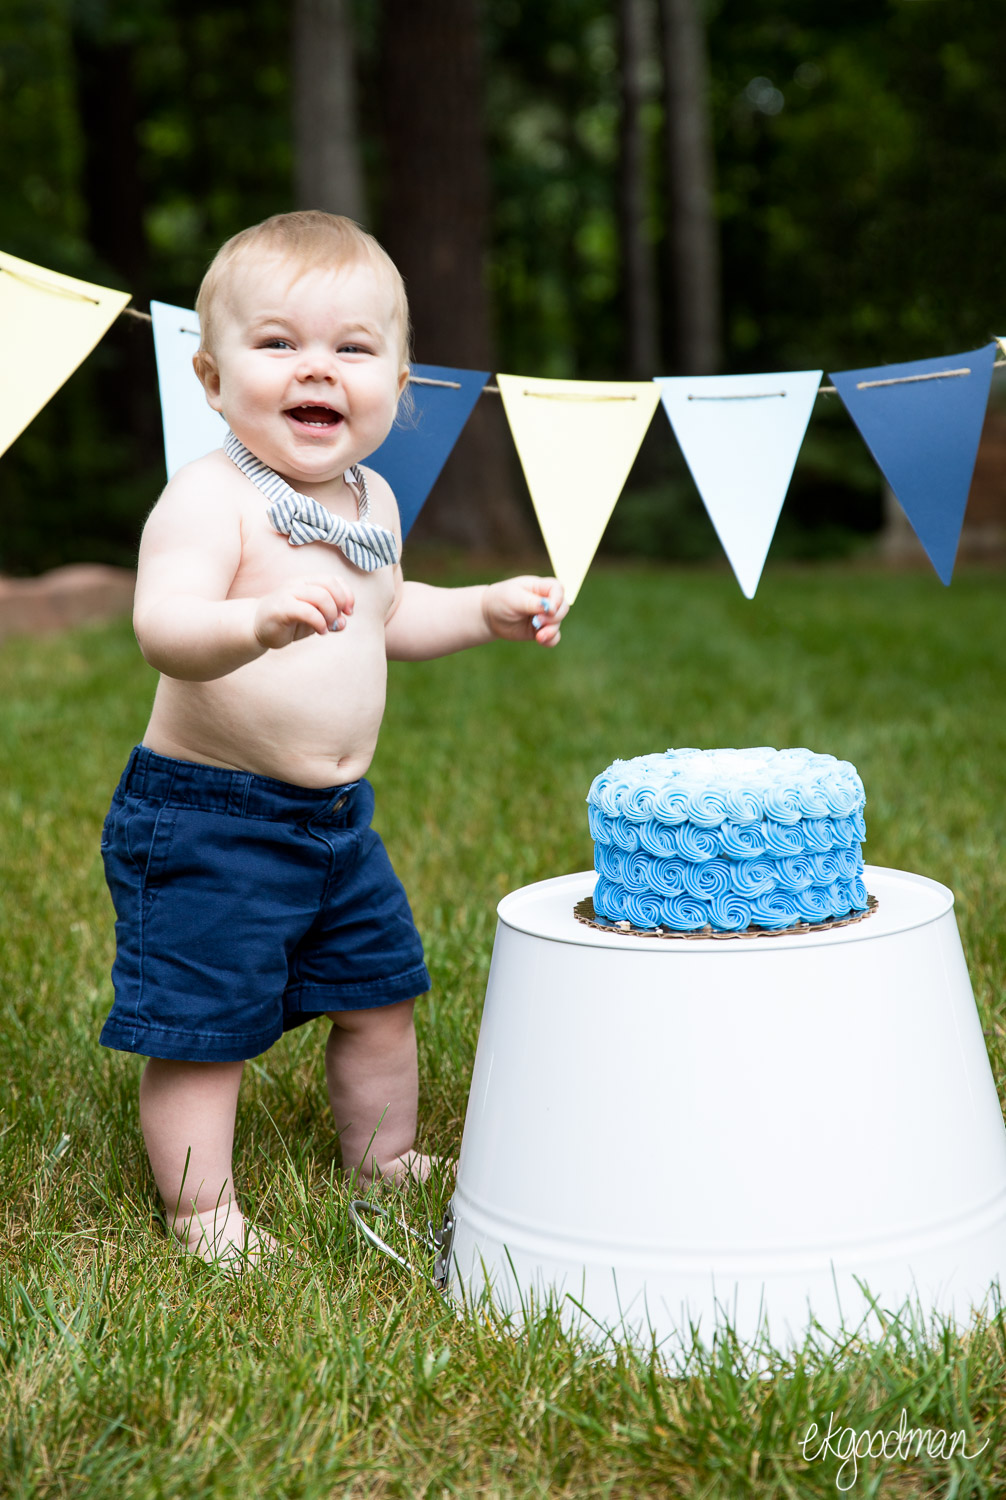 Smash! - A first birthday, a celebration, and blue icing everywhere